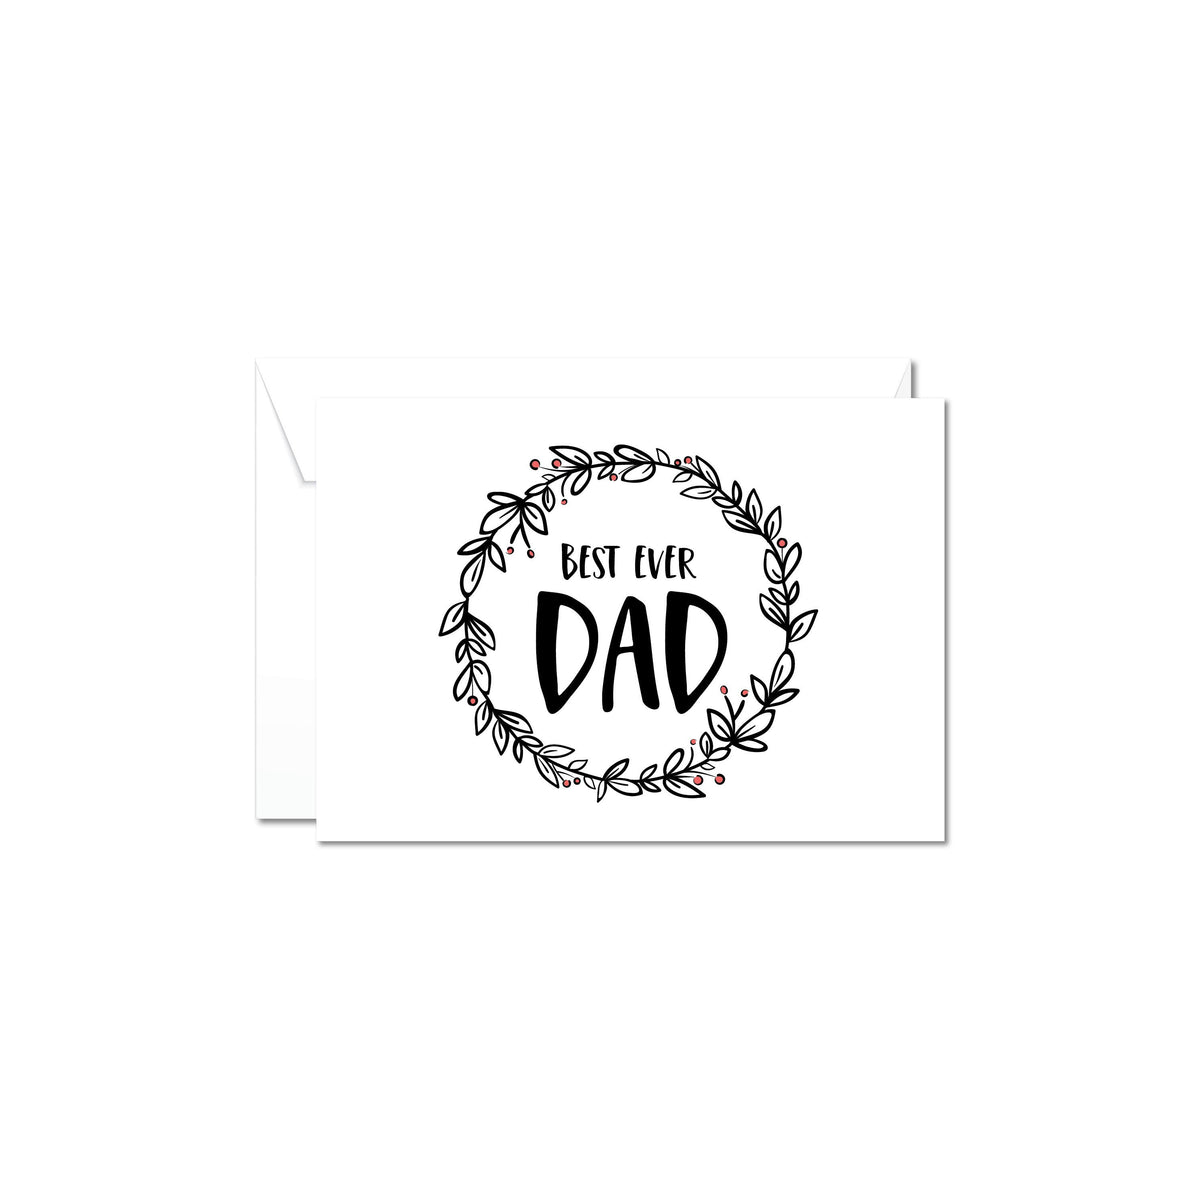 Boxsmith NZ Gift boxes & NZ gift hampers for Fathers Day - this monochrome Fathers Day gift card is the perfect accompaniment to your gift for him. Easy delivery NZ wide of our online gifts for him